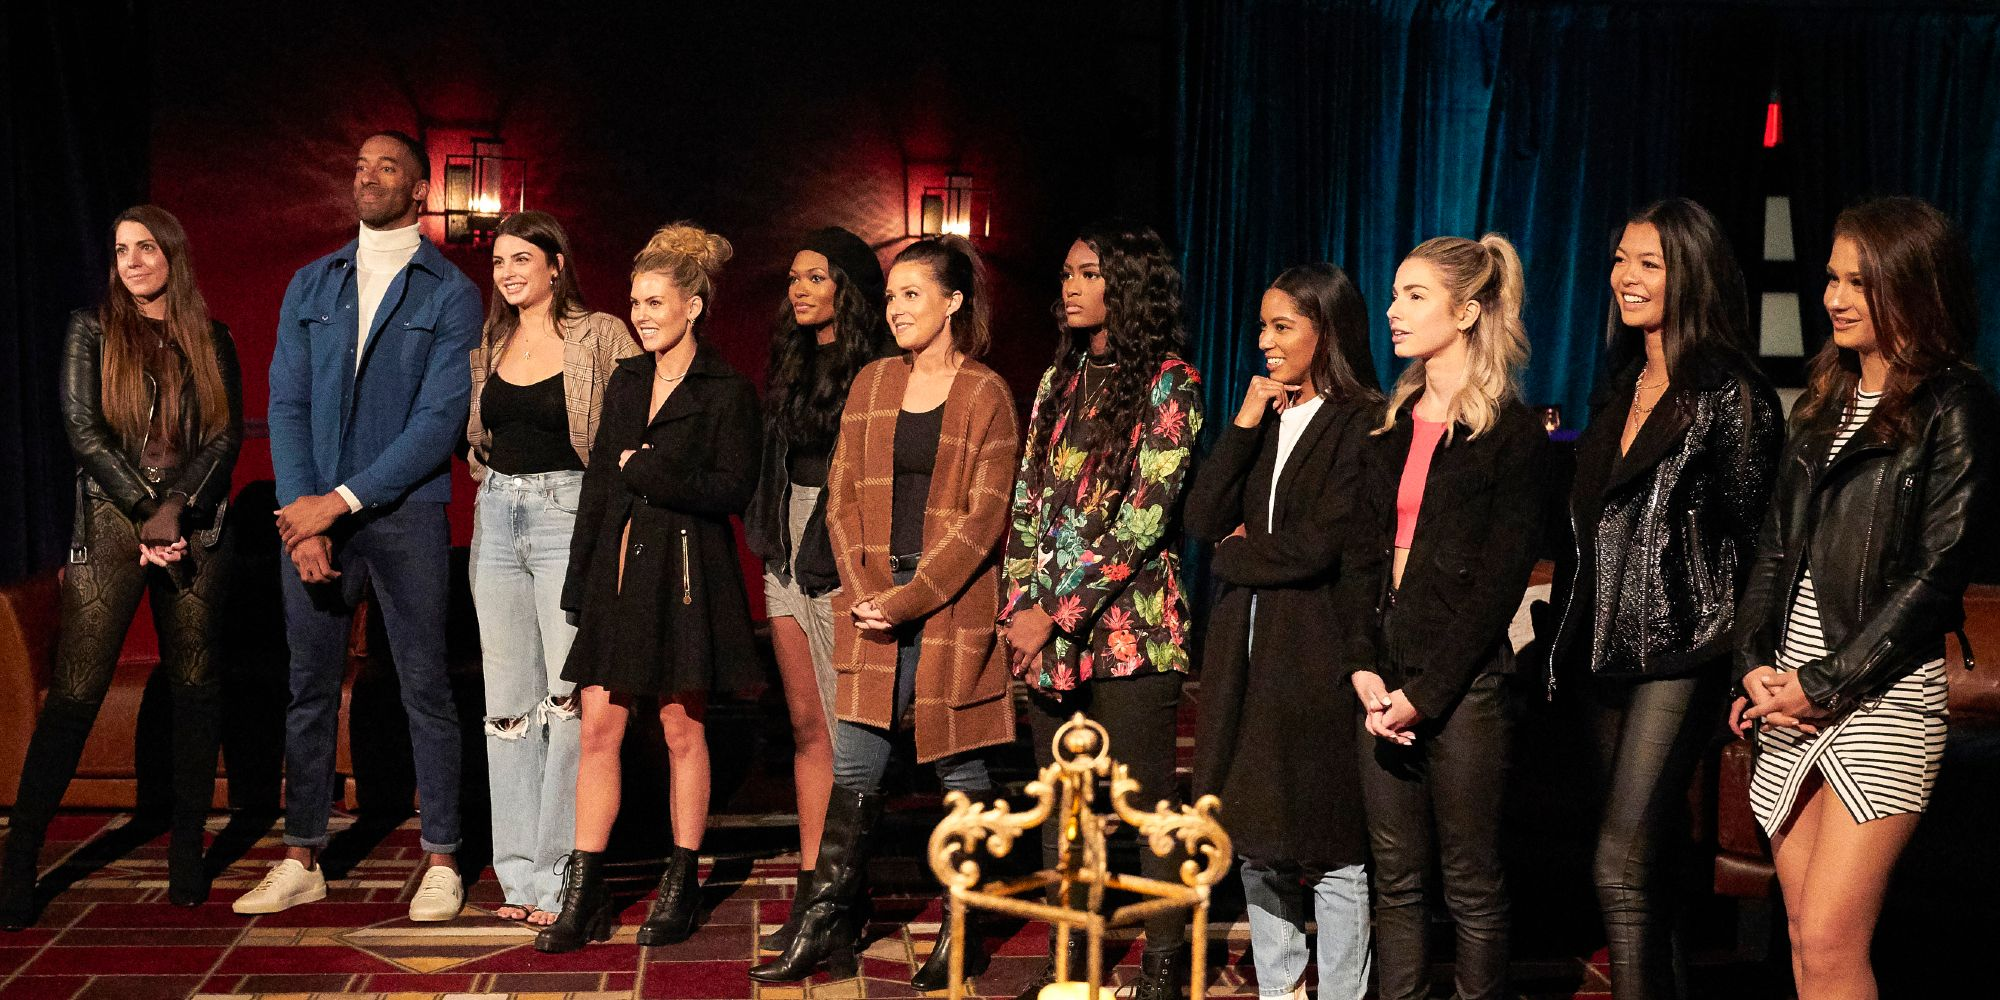 Bachelor: Fans Call Out Show For Not Casting Women Of Different Sizes